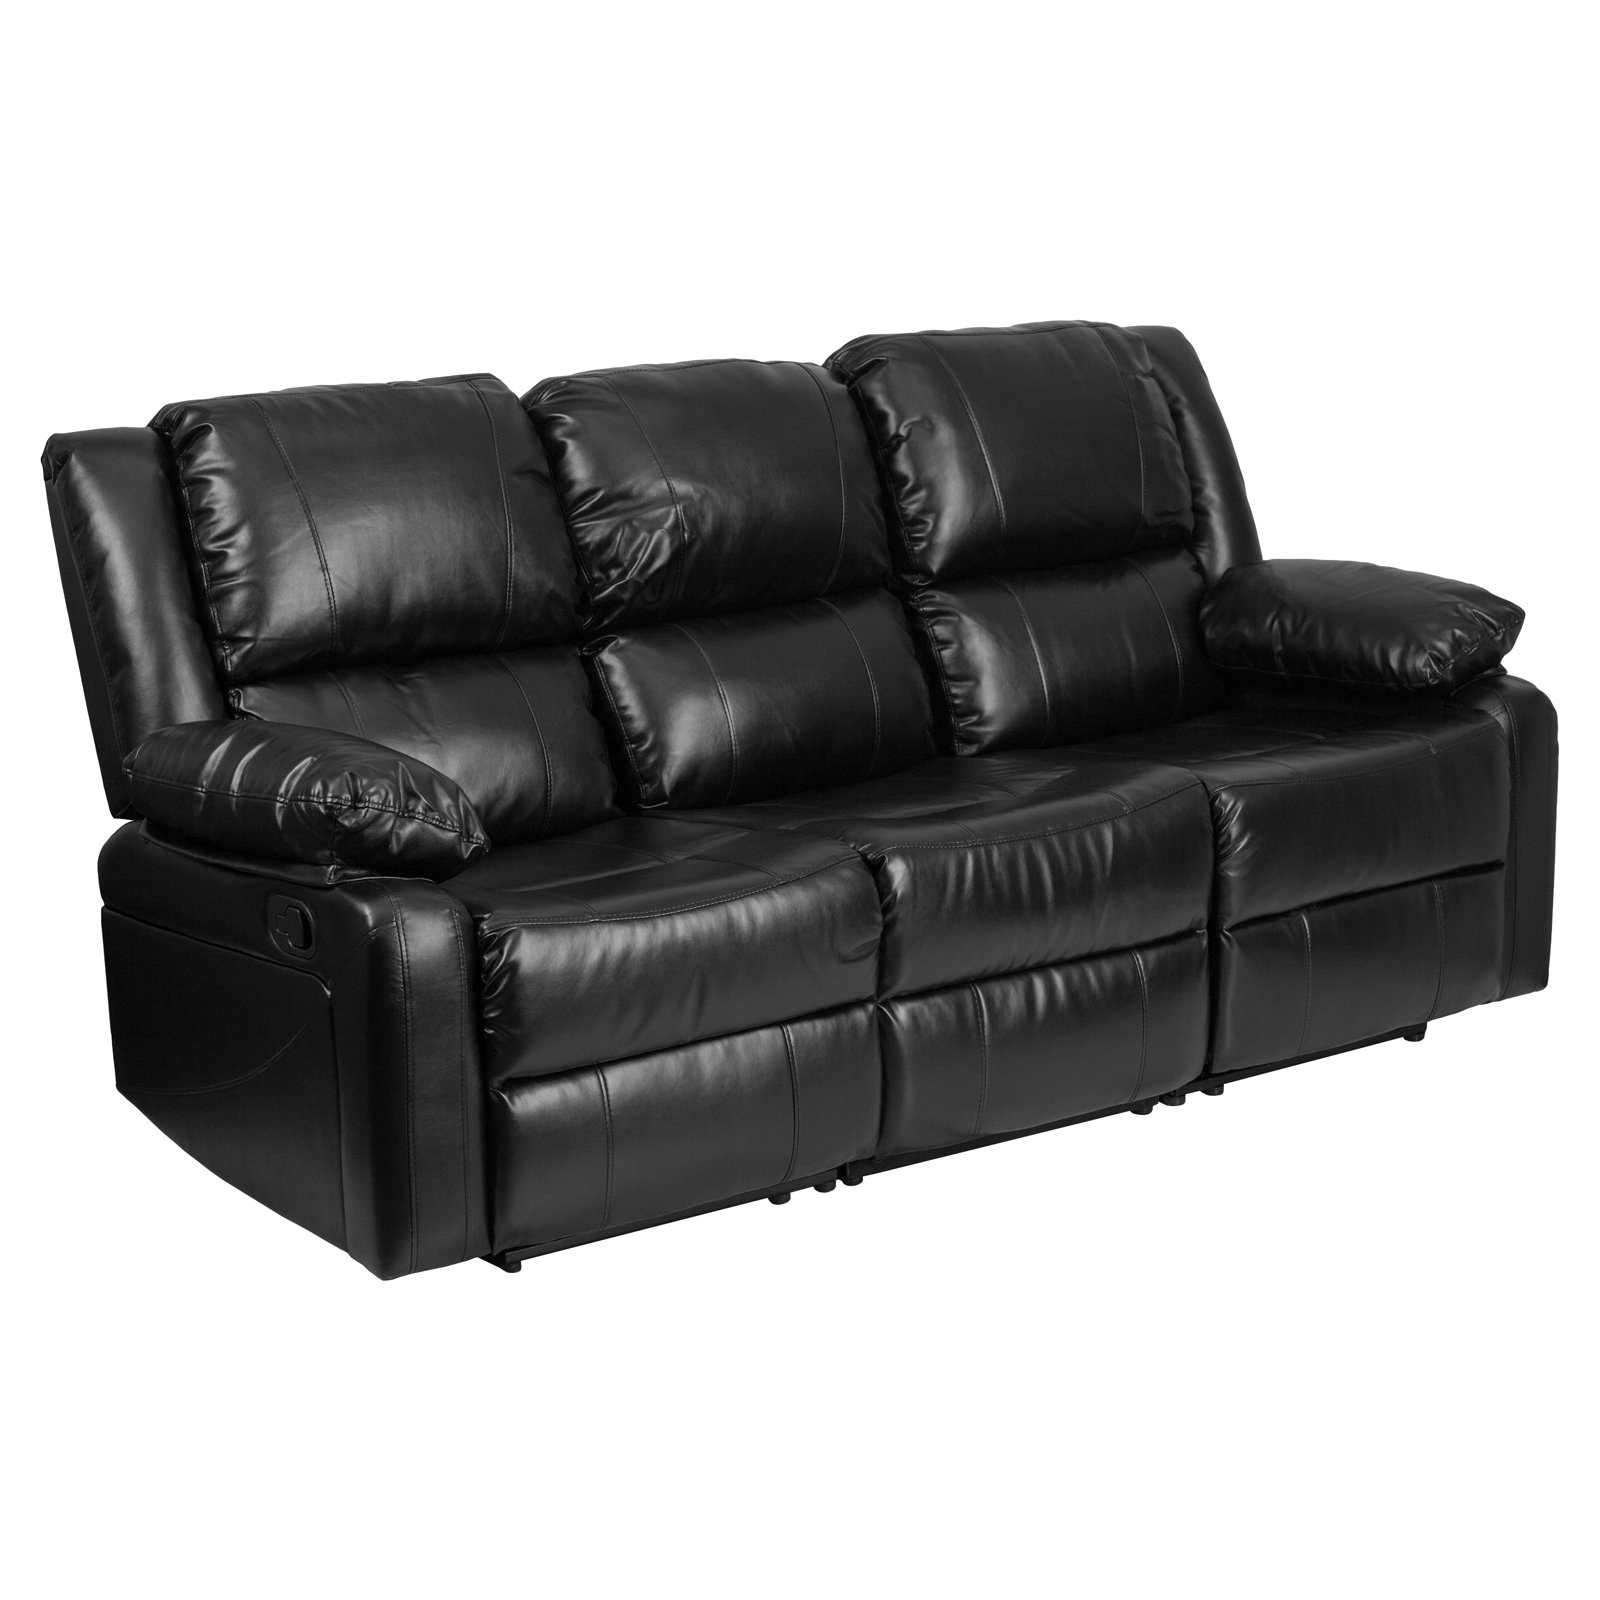 Flash furniture harmony series black leather sofa with two built in recliners walmart com